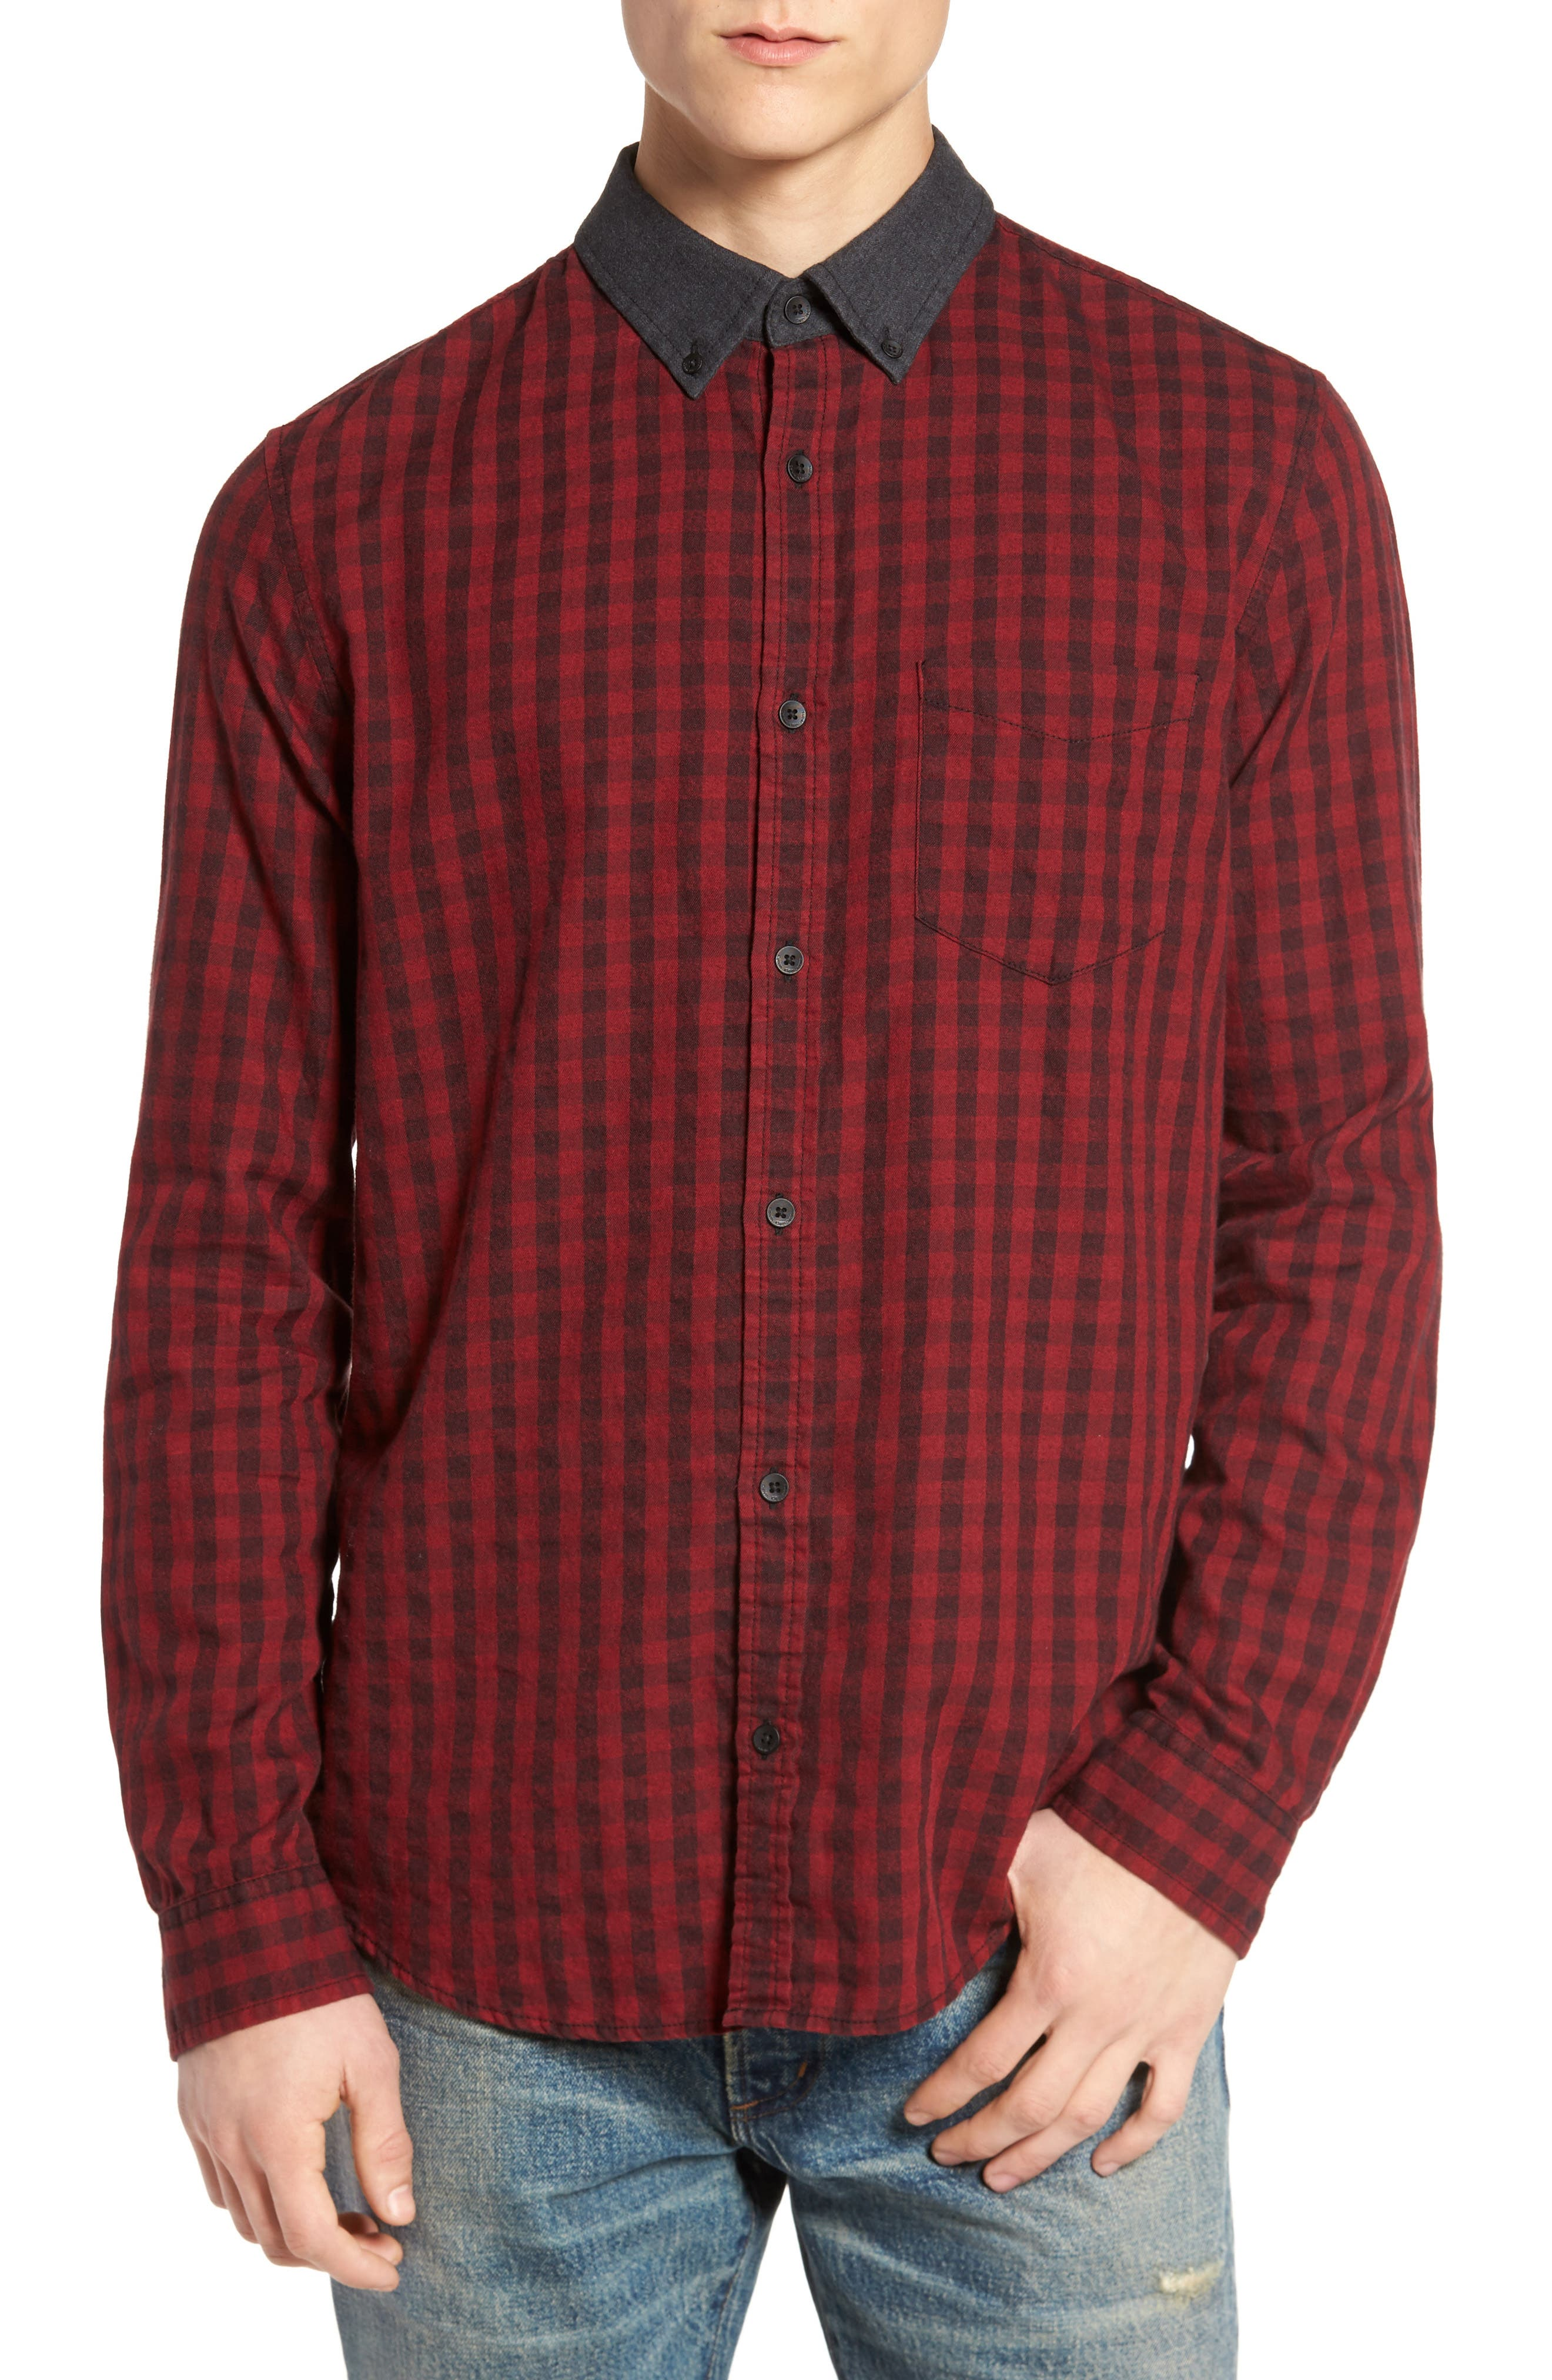 Barn Flannel Shirt,                         Main,                         color, Red Gala